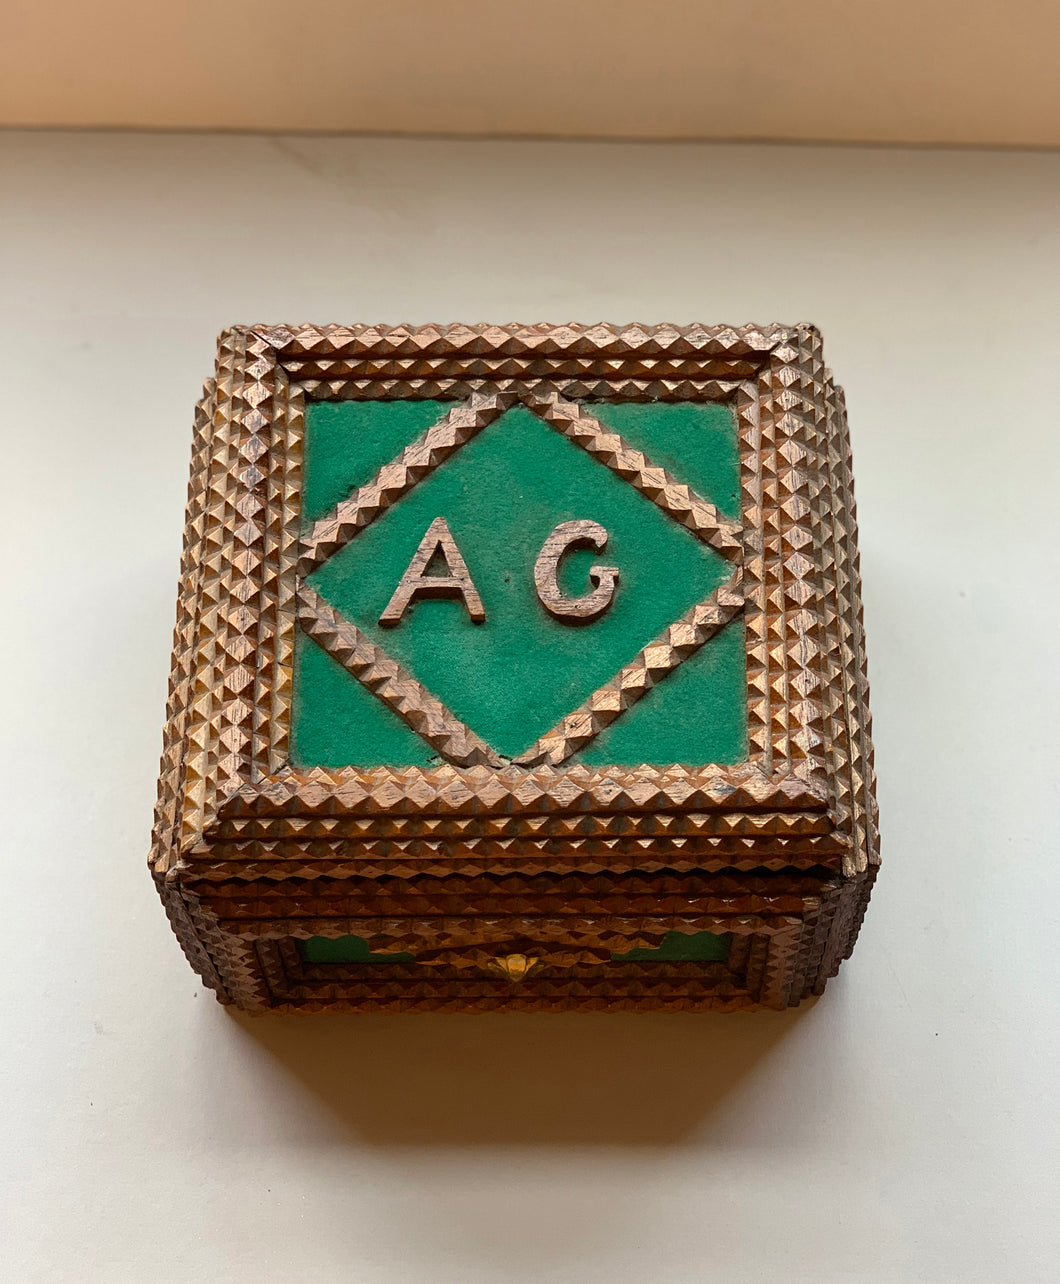 Tramp Art Box with Green Felt with Initials A G